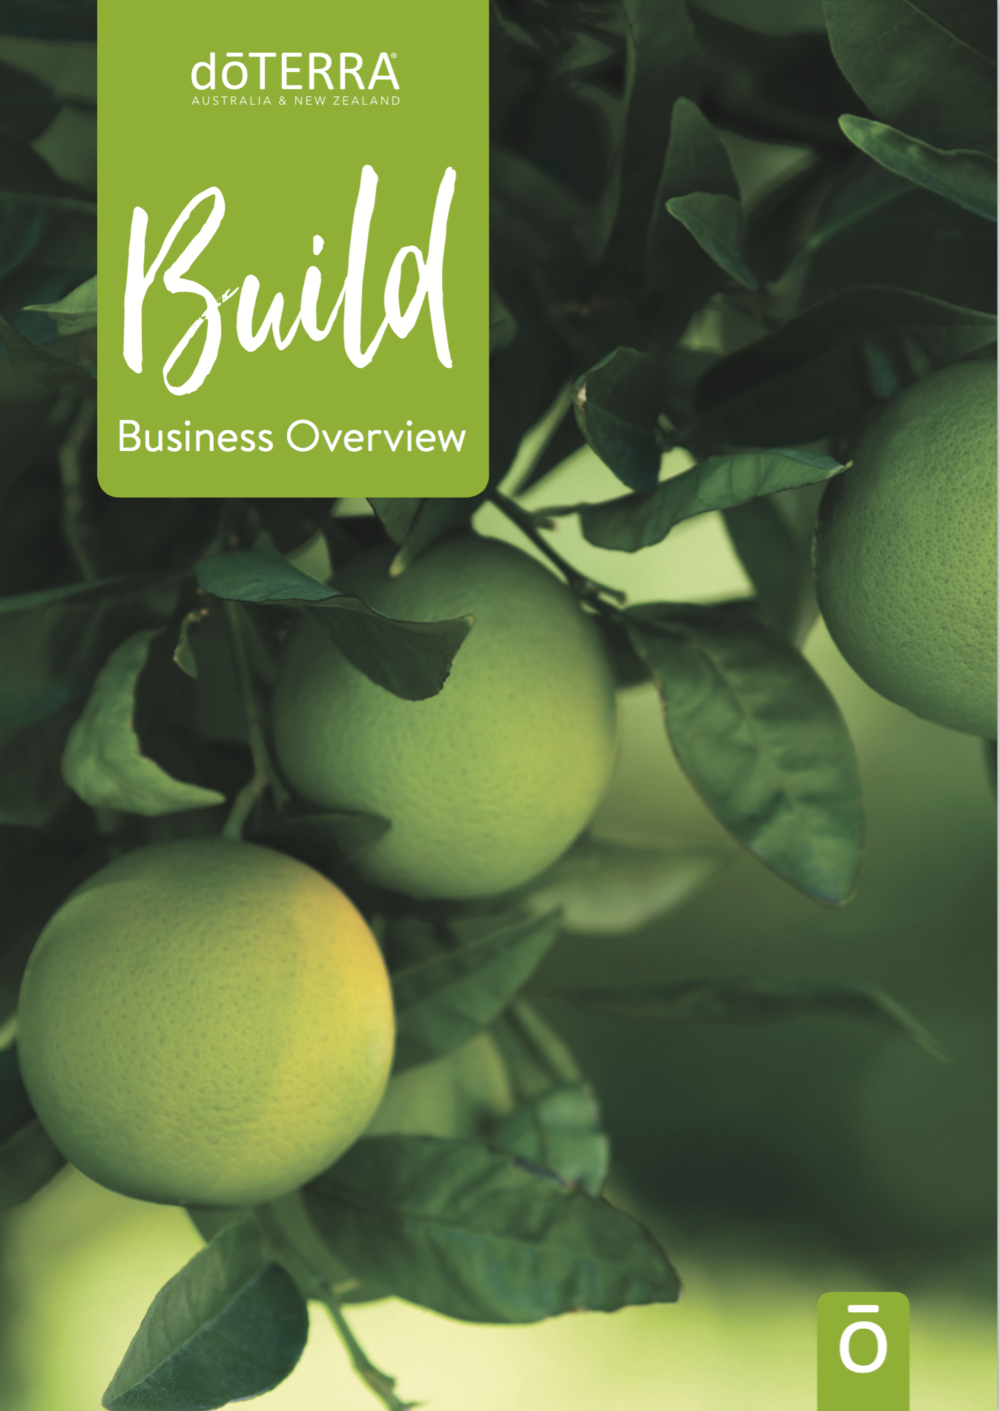 Click here to download our Business overview